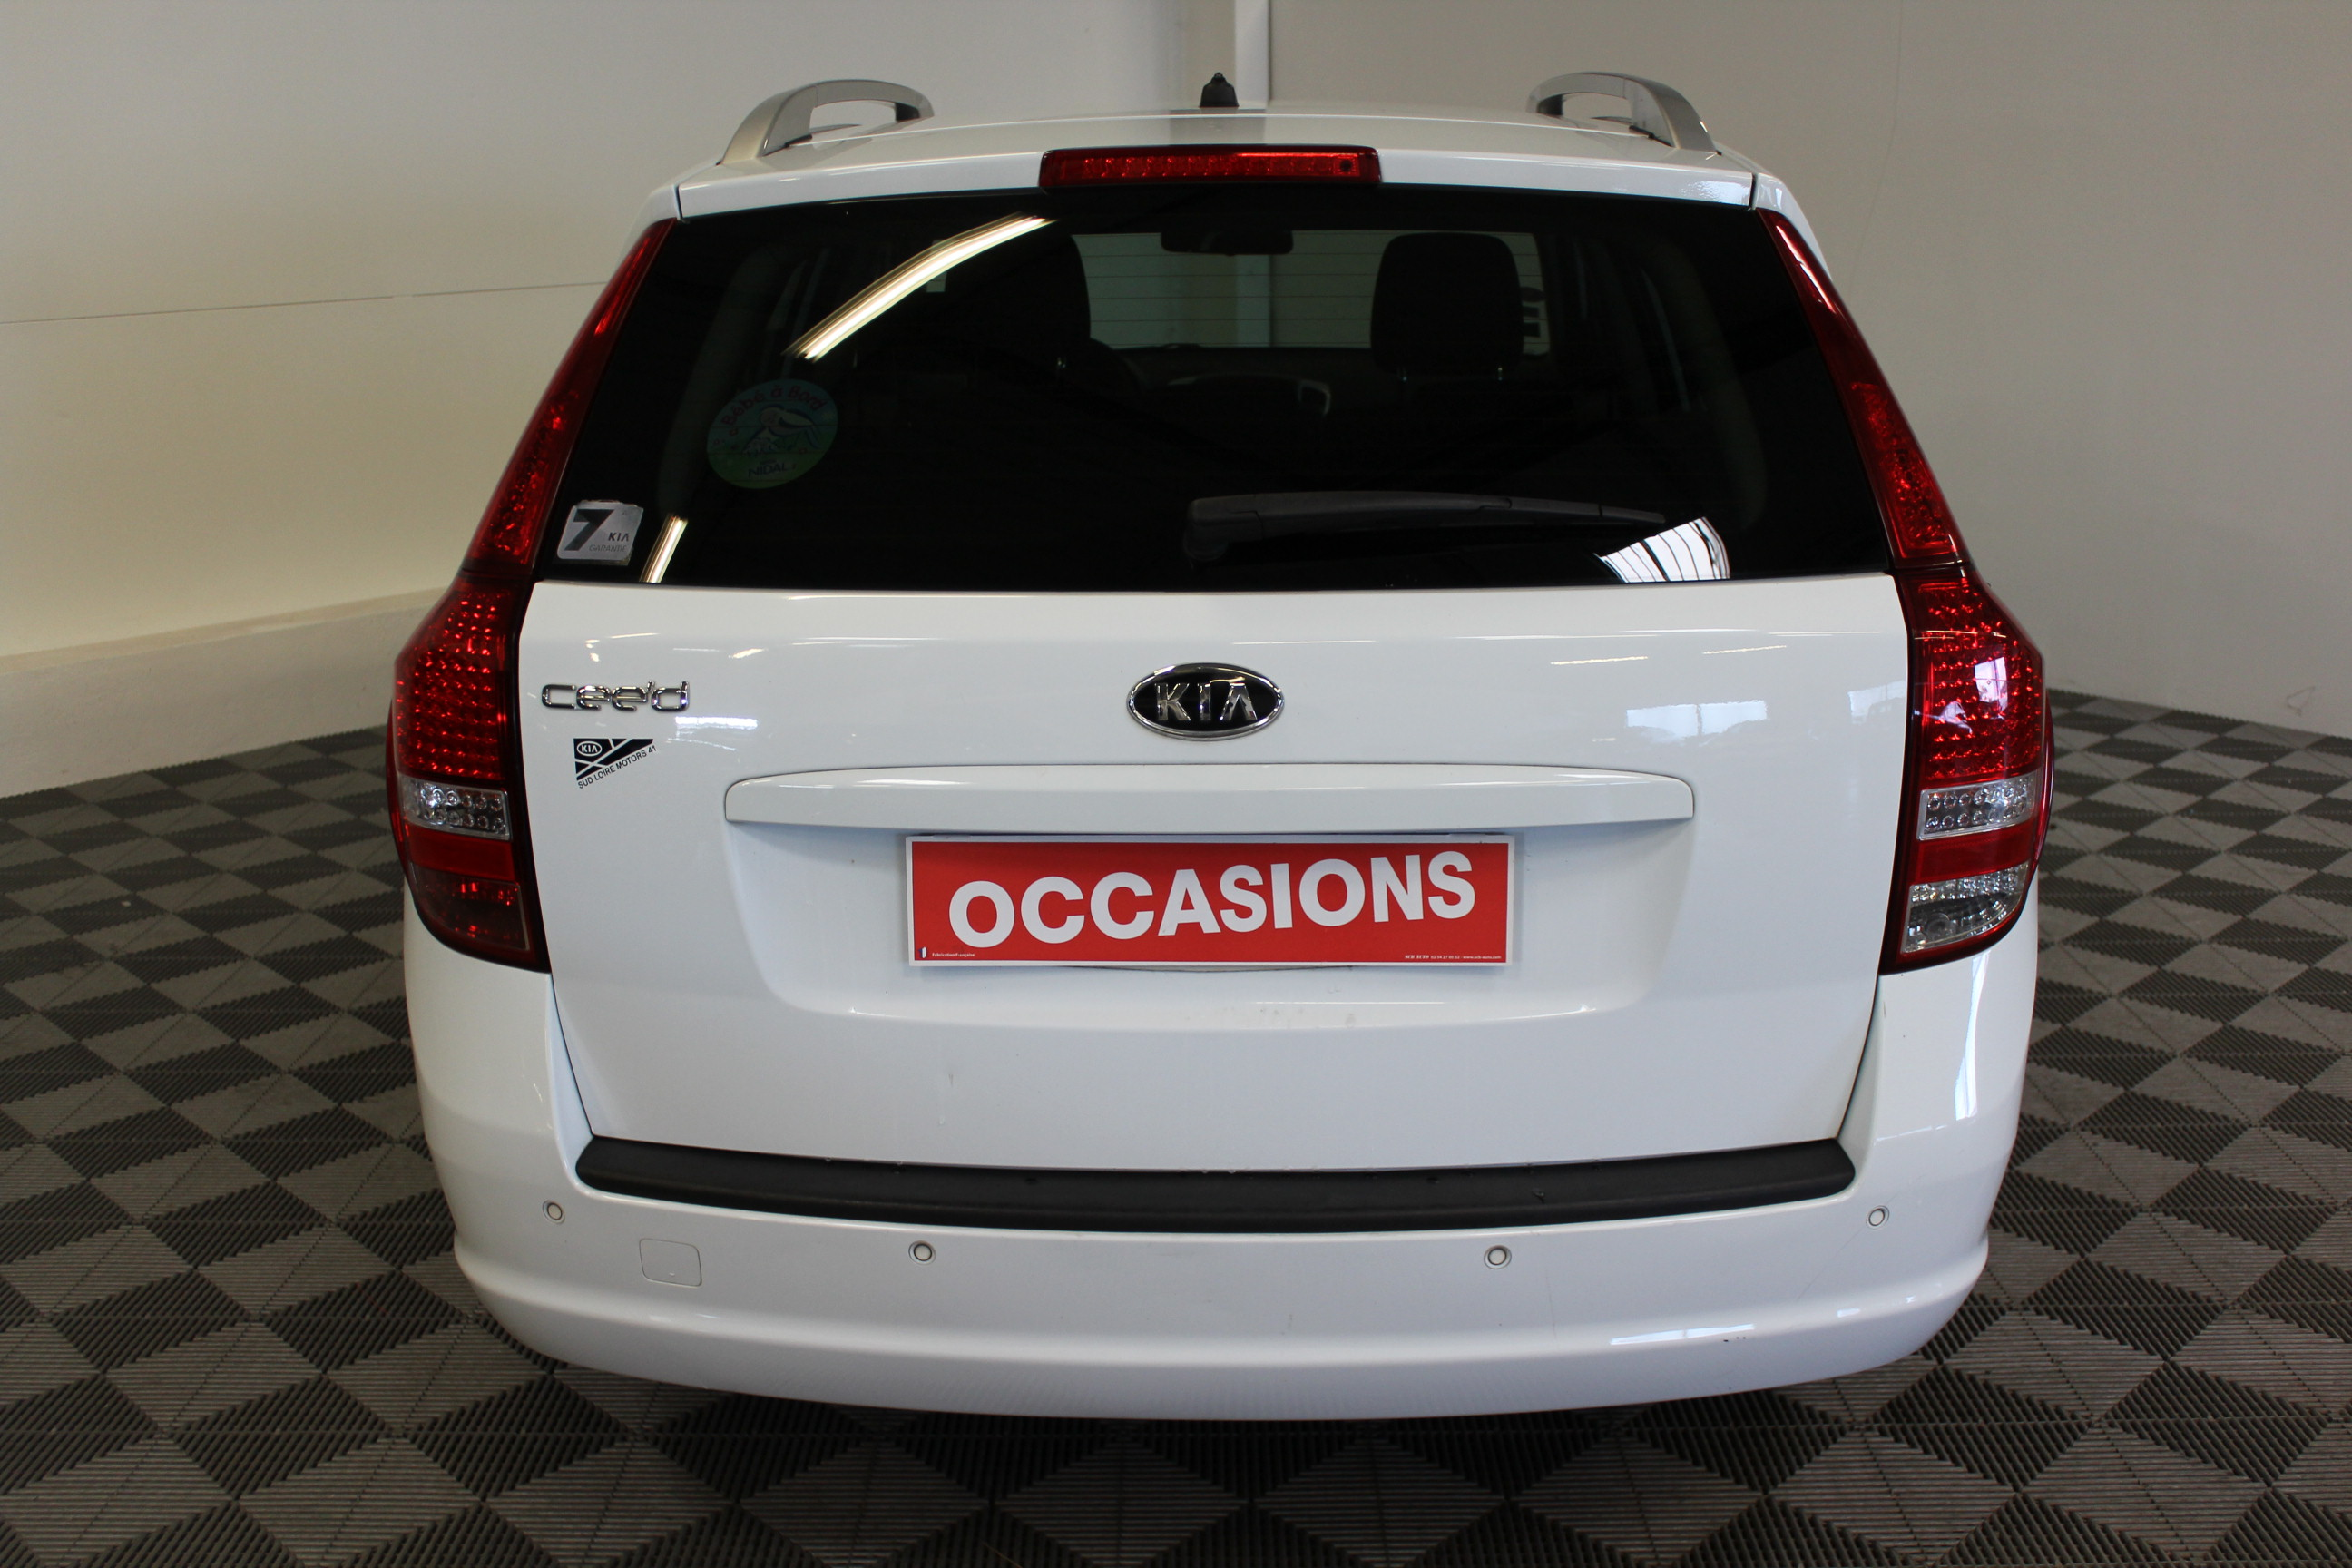 KIA CEE'D SW 2011 à 5400 € - Photo n°16